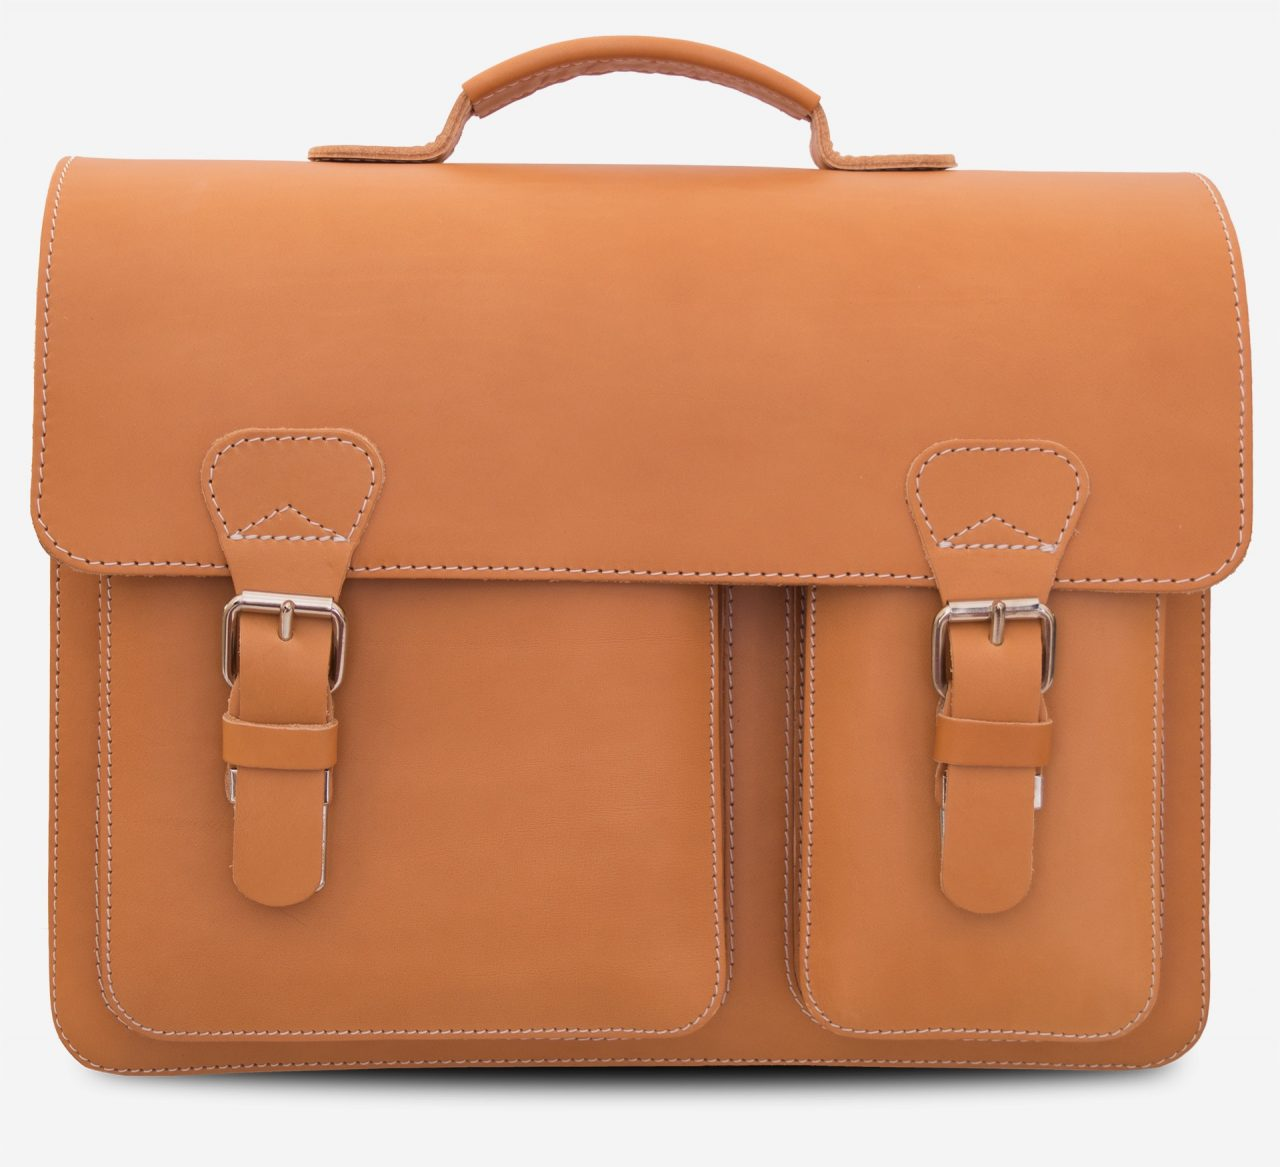 Front view of the tan leather satchel briefcase with asymmetric front pockets.